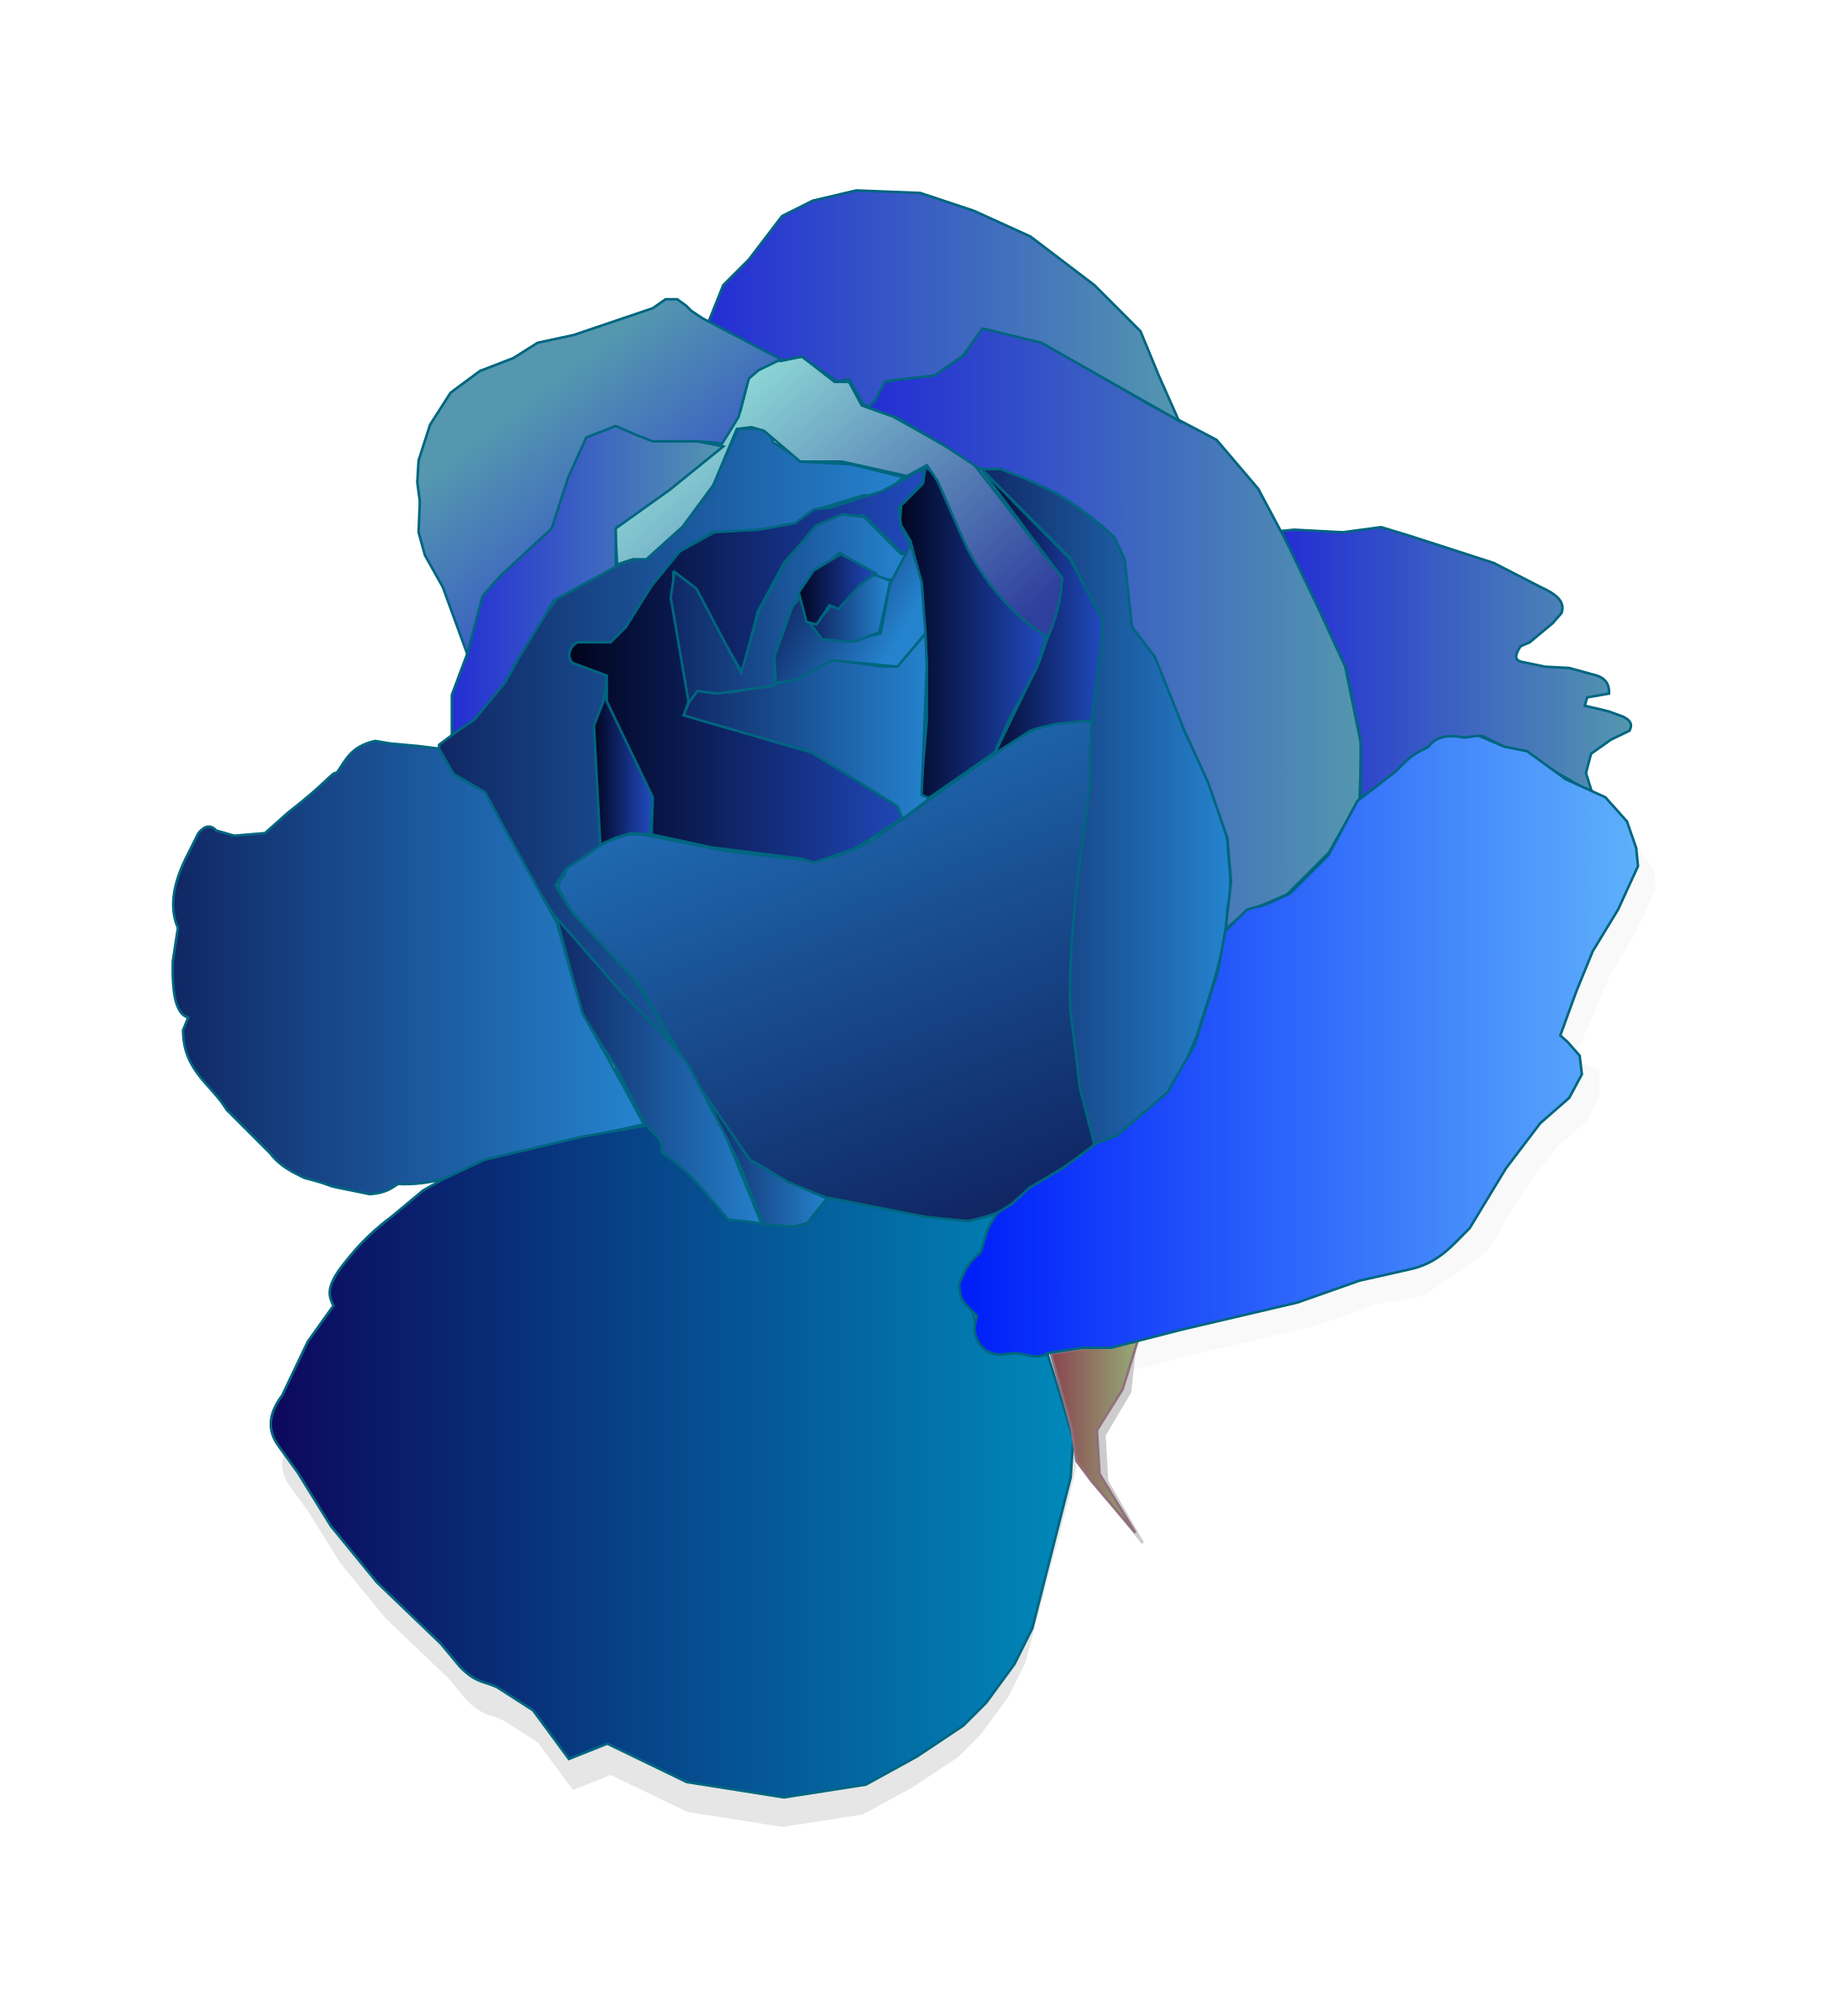 Background clipart blue. Roses images gallery for